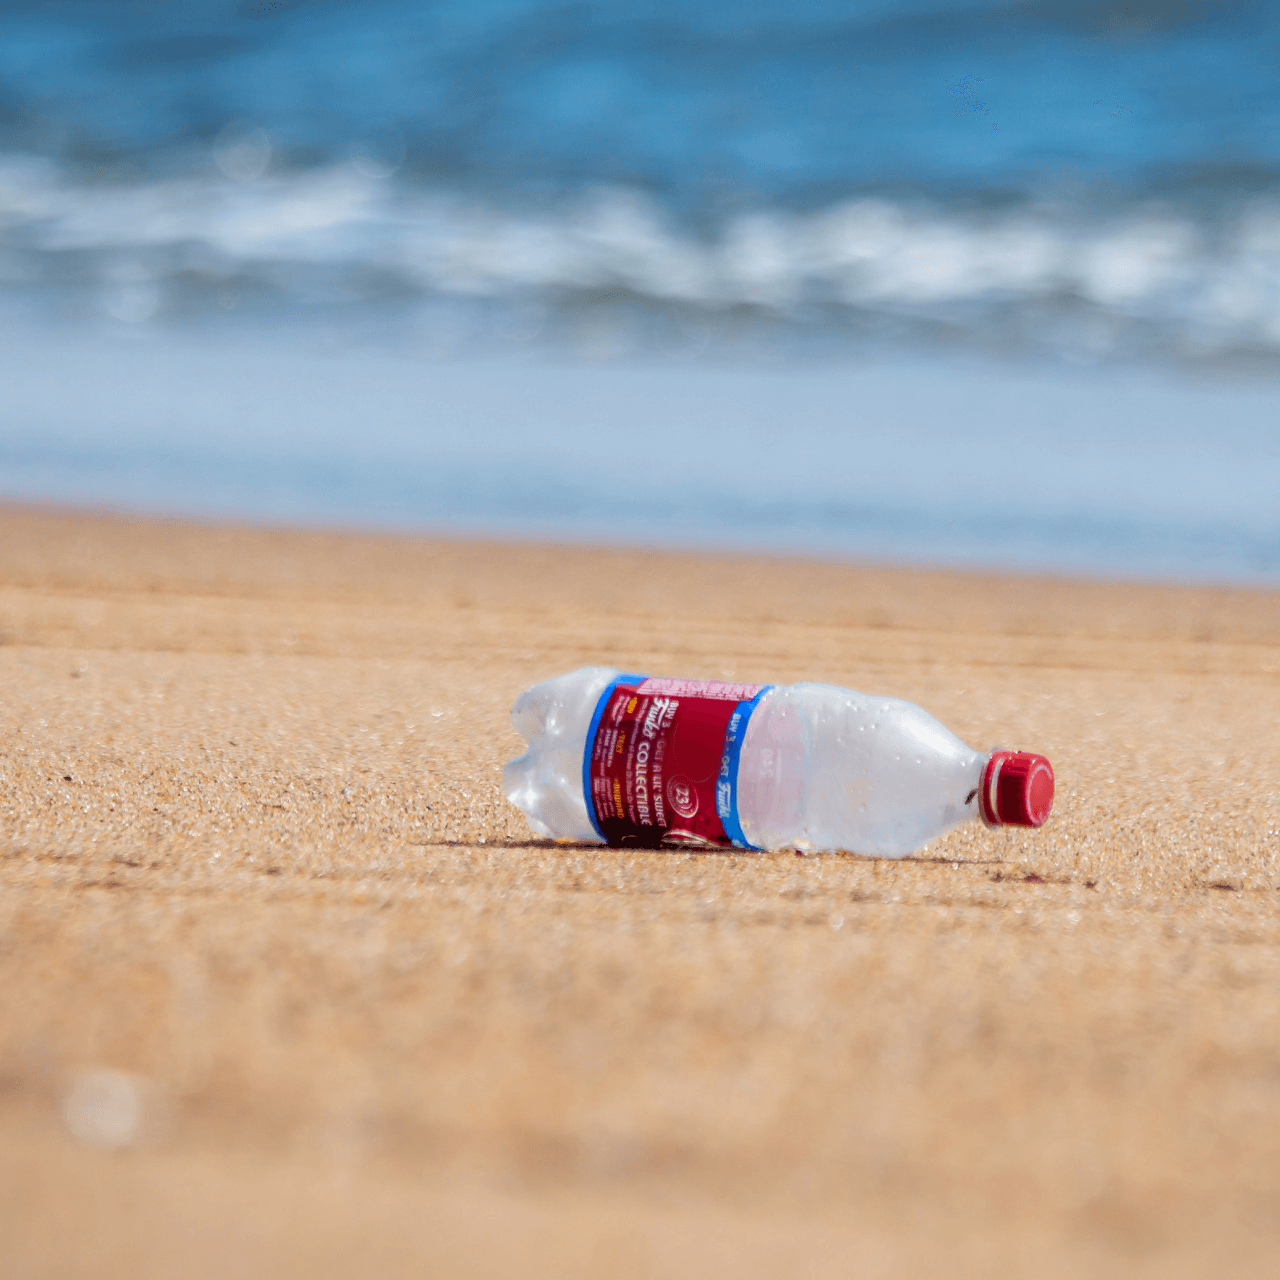 Climate Change and the Long, Long Life of Single-Use Plastic